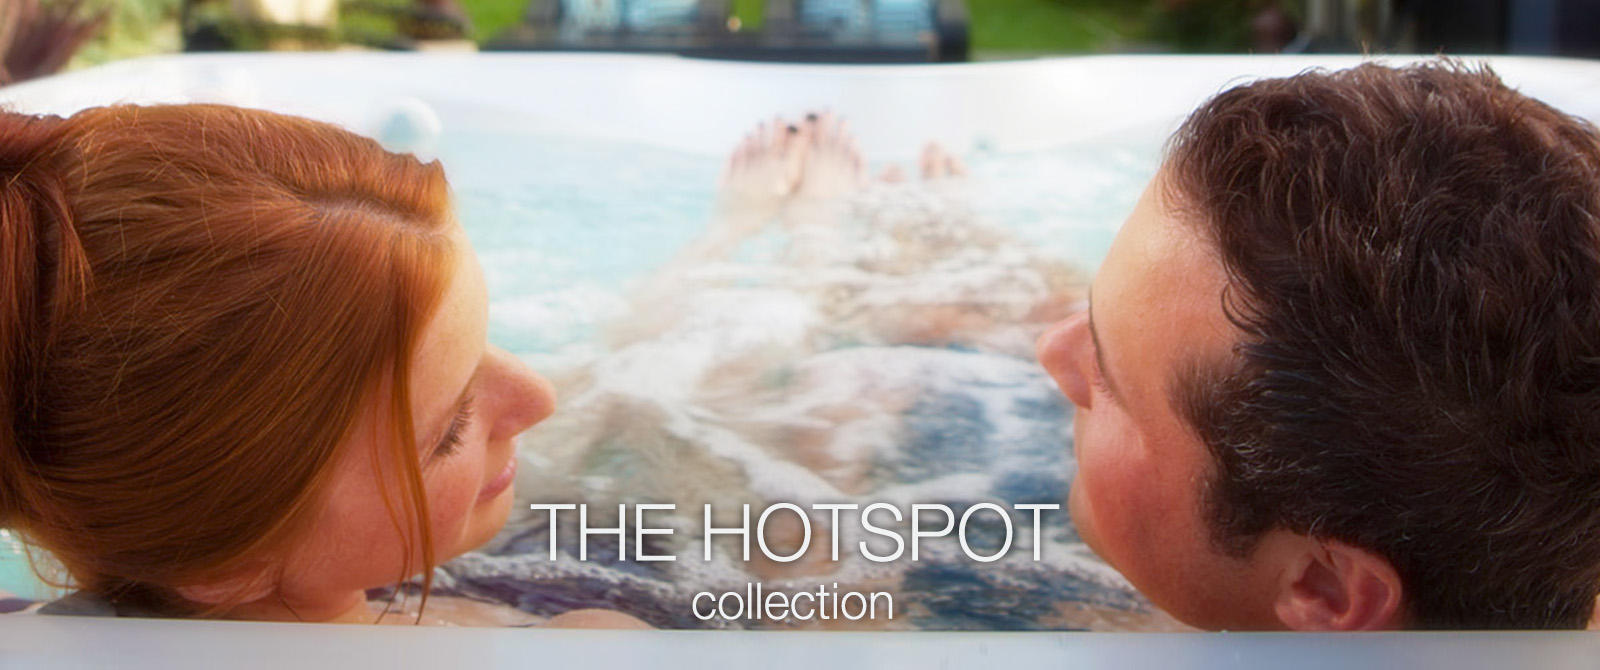 hotspot spa collection